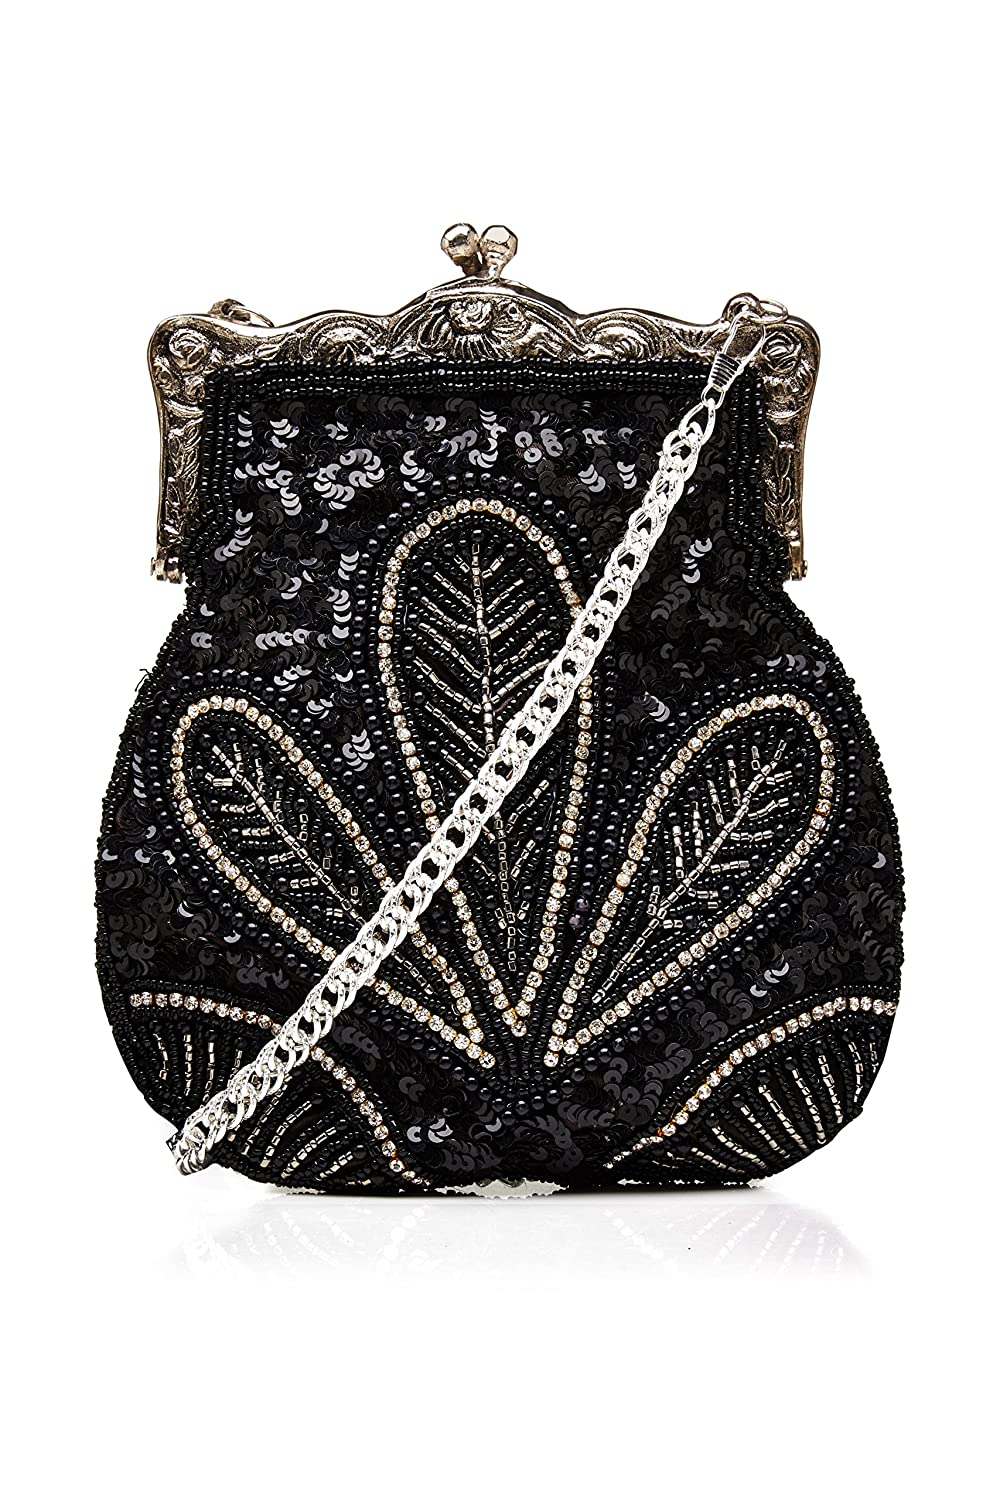 Vintage & Retro Handbags, Purses, Wallets, Bags Dollie Vintage Inspired Hand Beaded Flapper Purse in Black $77.16 AT vintagedancer.com